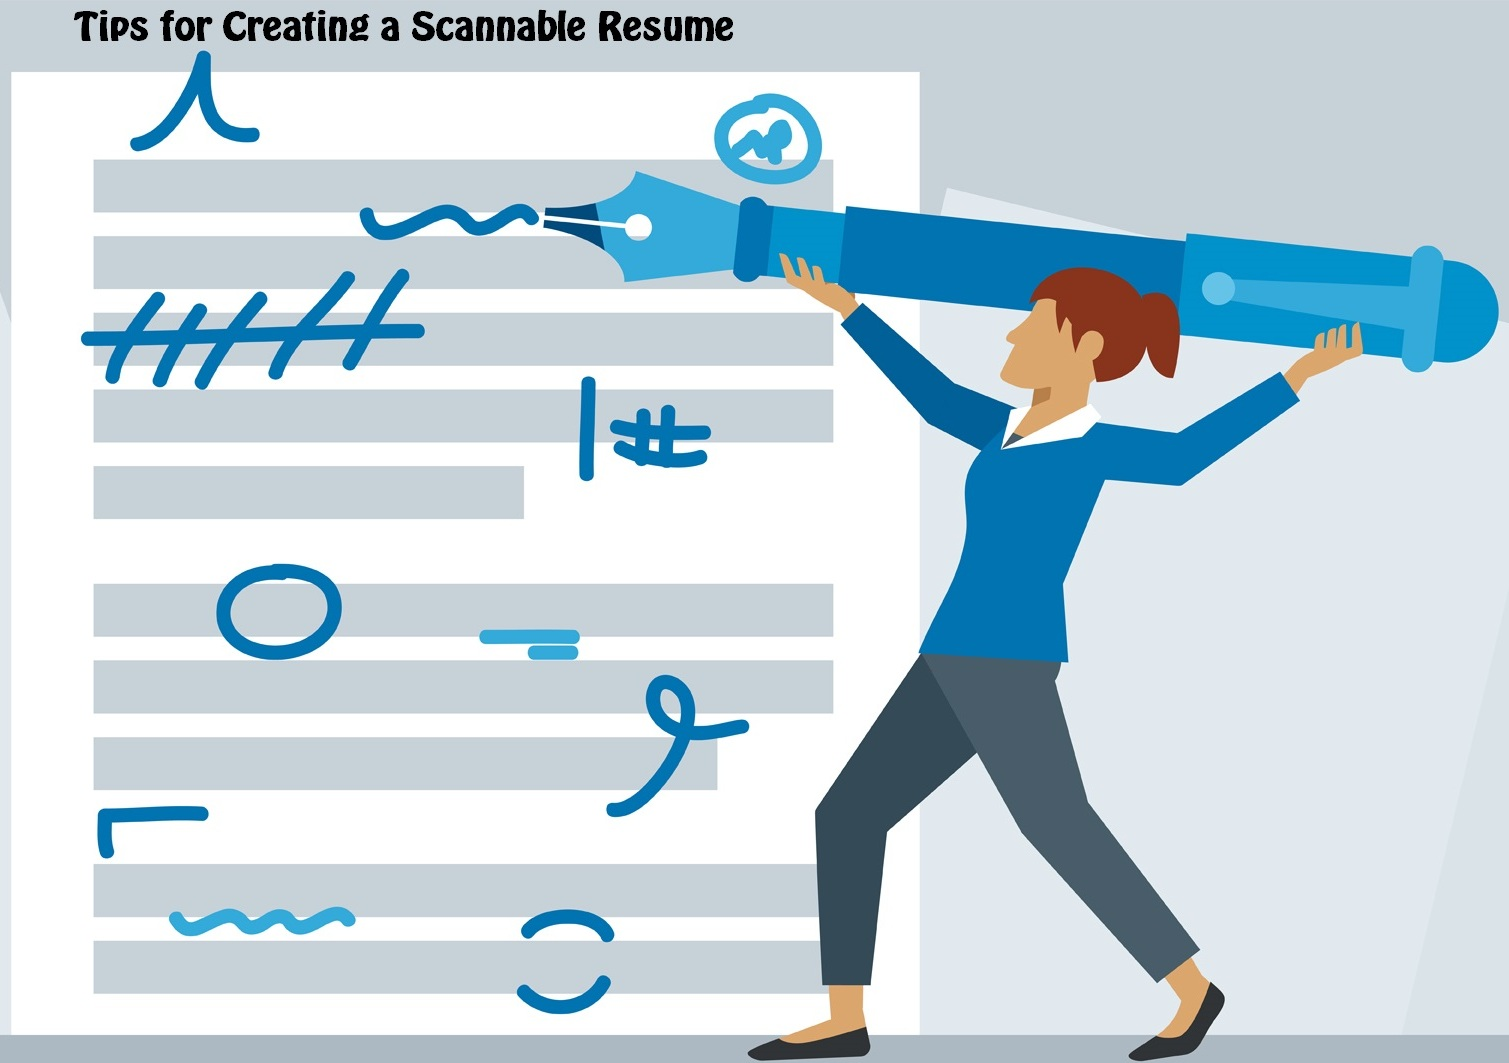 Tips for Creating a Scannable Resume